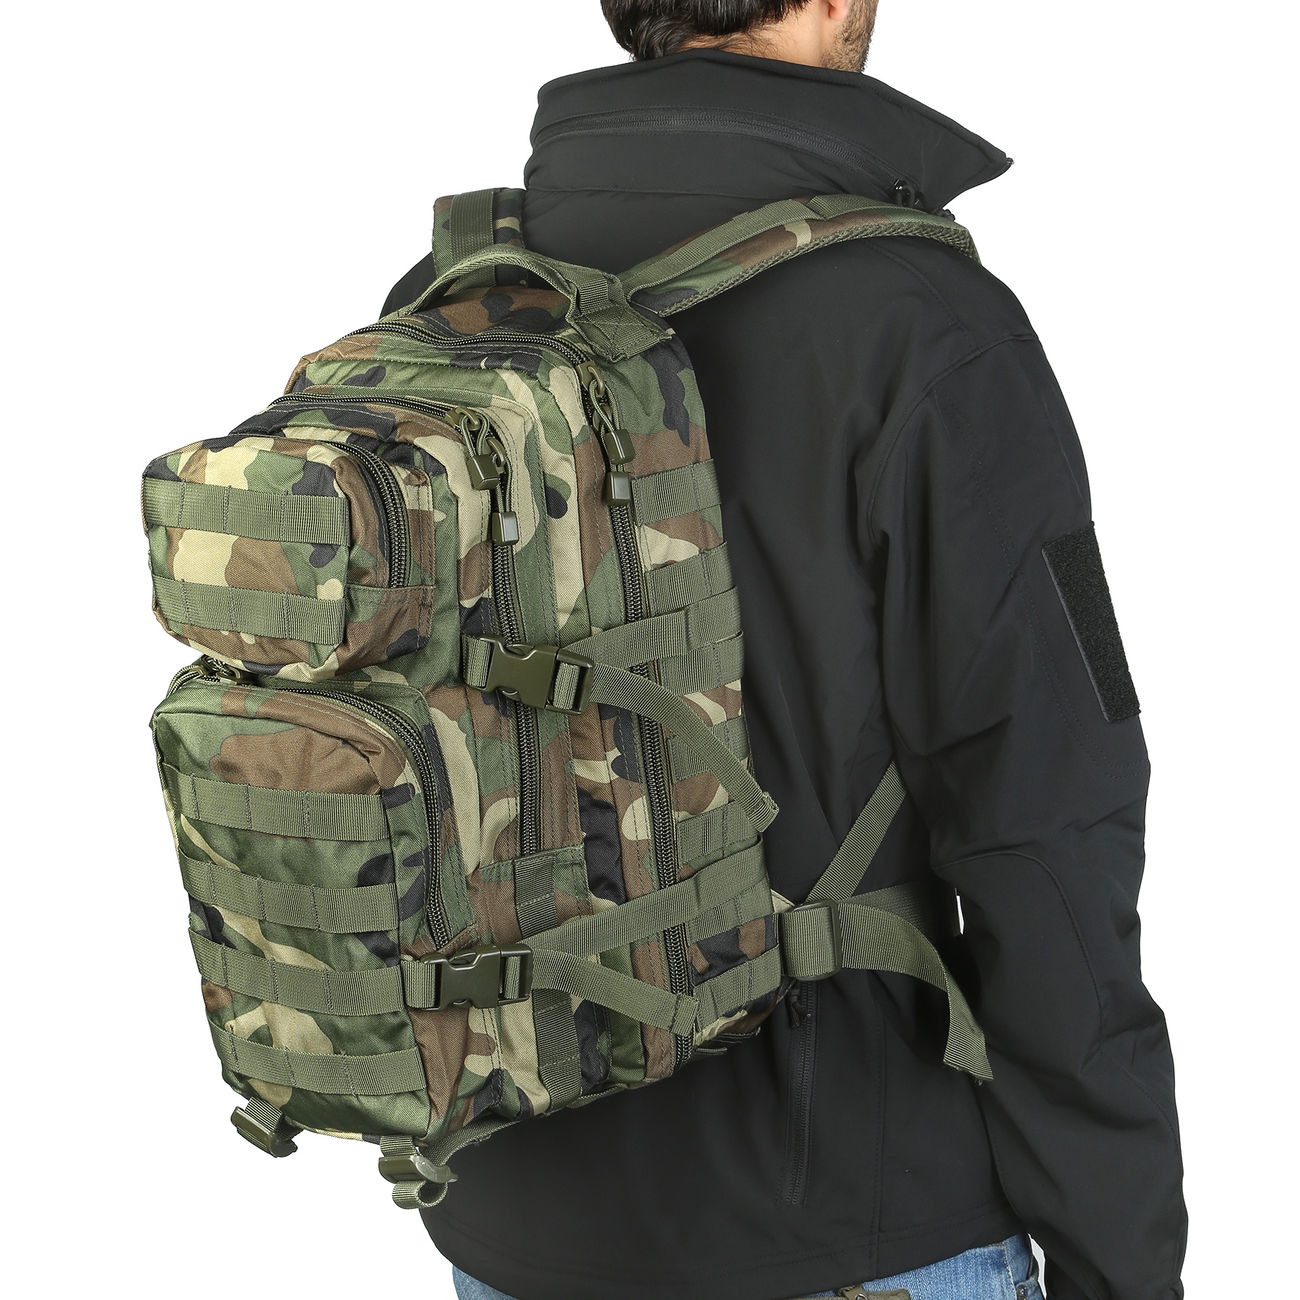 Mil-Tec Rucksack US Assault Pack I 20 Liter woodland 10